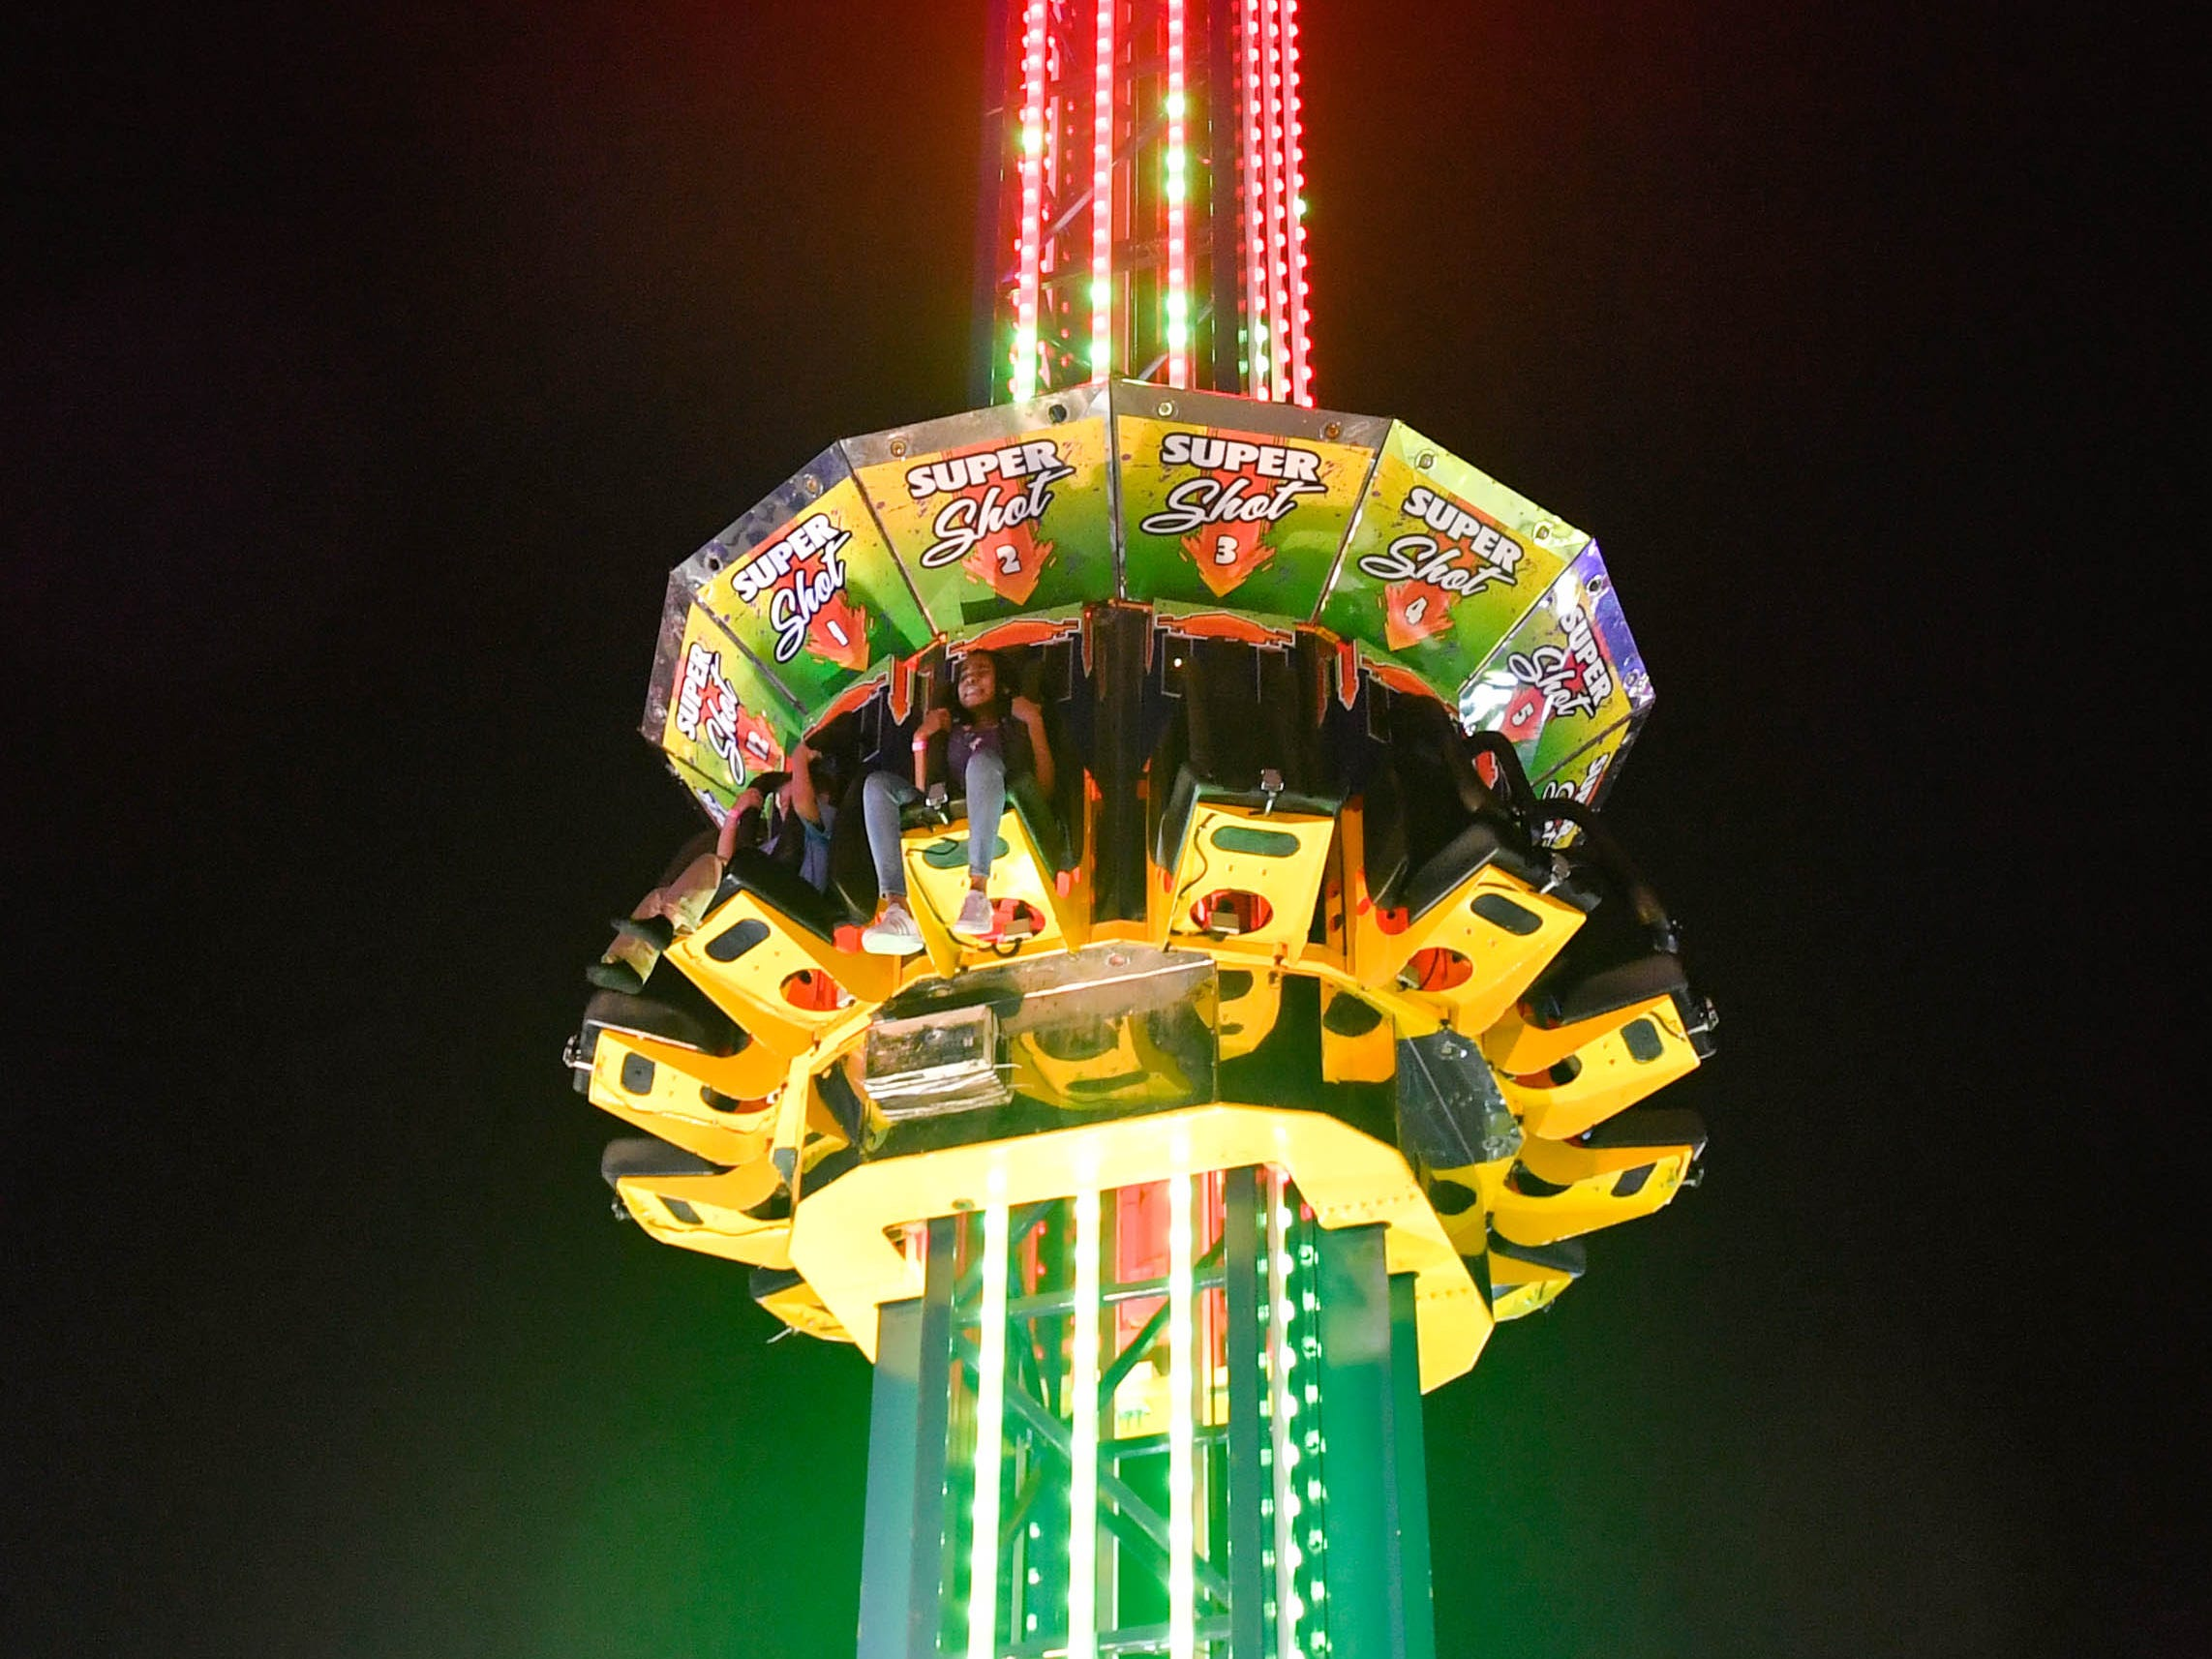 Super Shot takes riders up to the very top of the spire and drops them down in free fall.